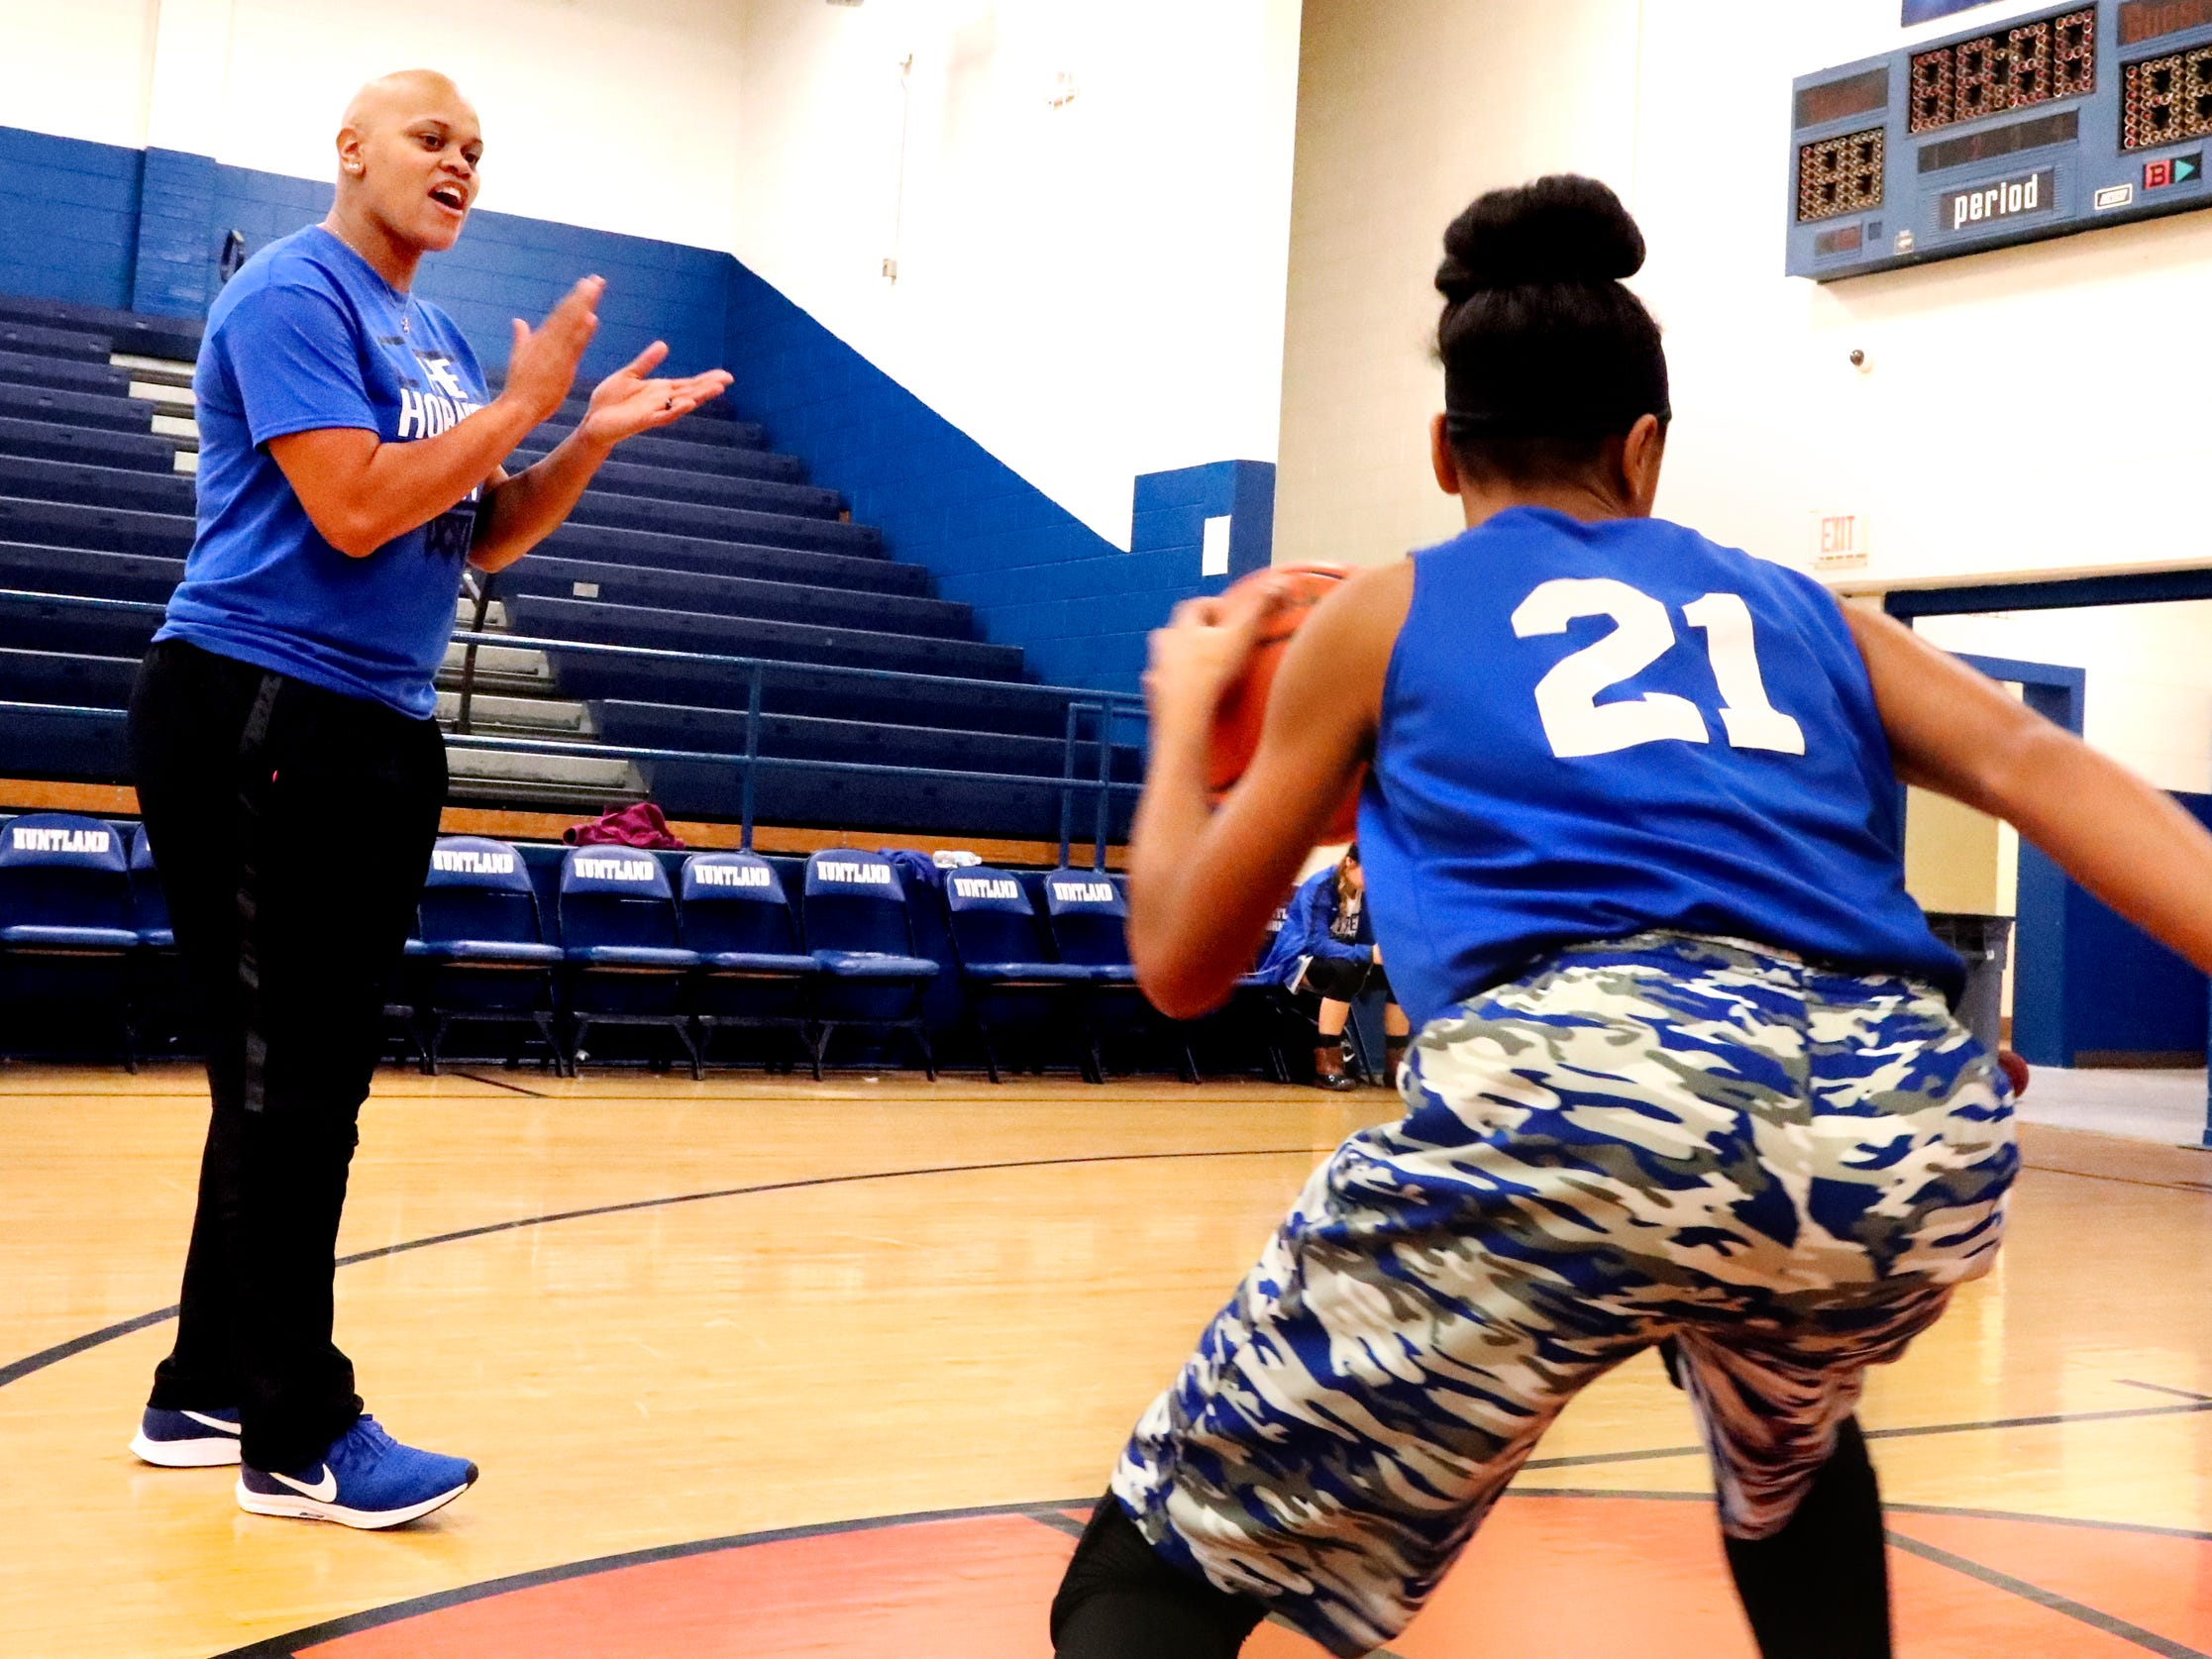 Coach Tia Stovall encourages and pushes her middle school players during practice, including her daughter TaTianna Stovall (21) on Tuesday, Nov. 13, 2018.